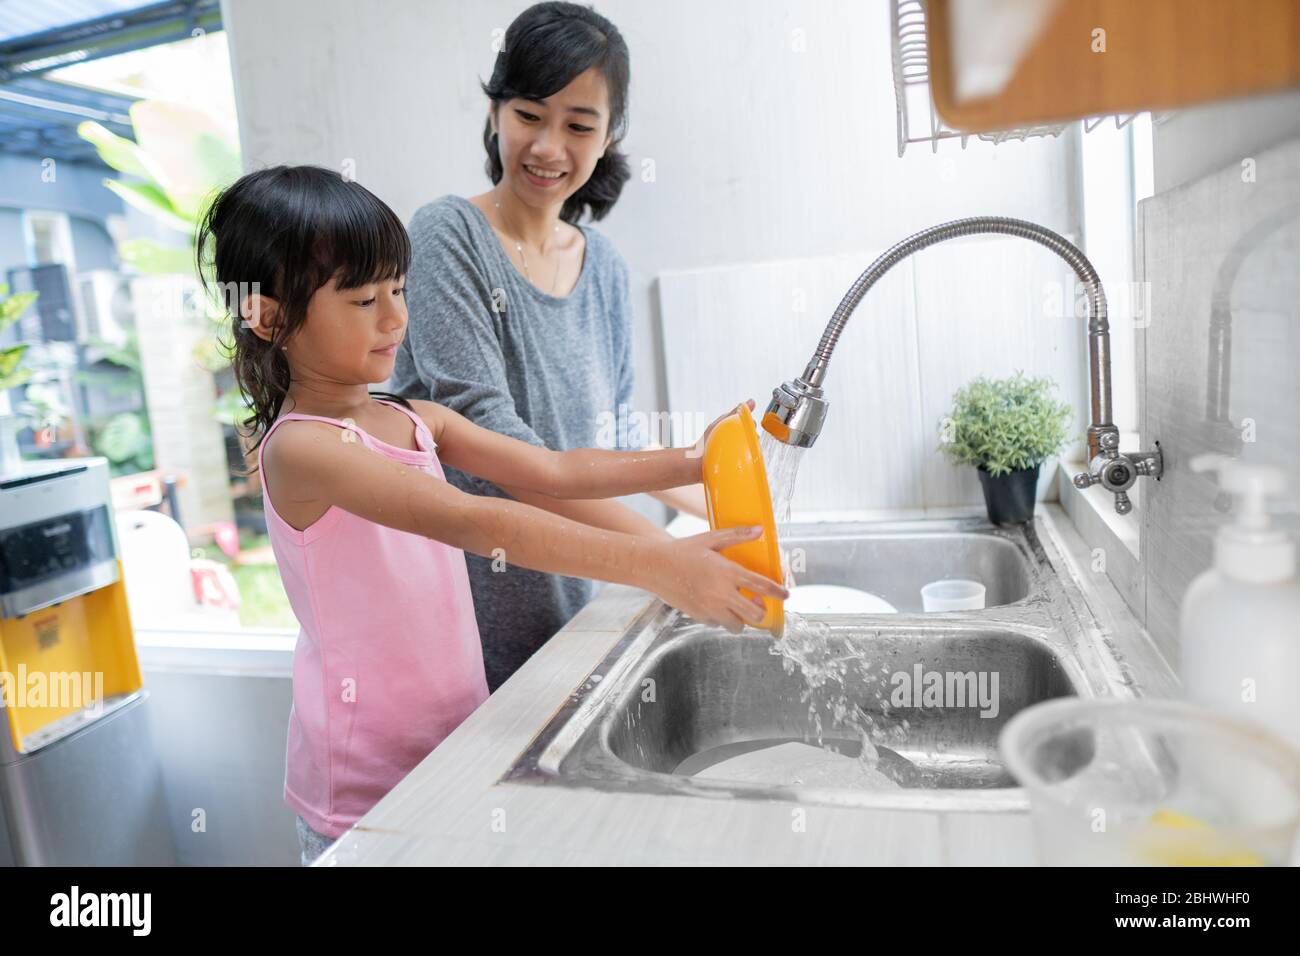 Helping hand. Cute little Girl Help Her Mother In Washing Dishes At Family Kitchen Stock Photo